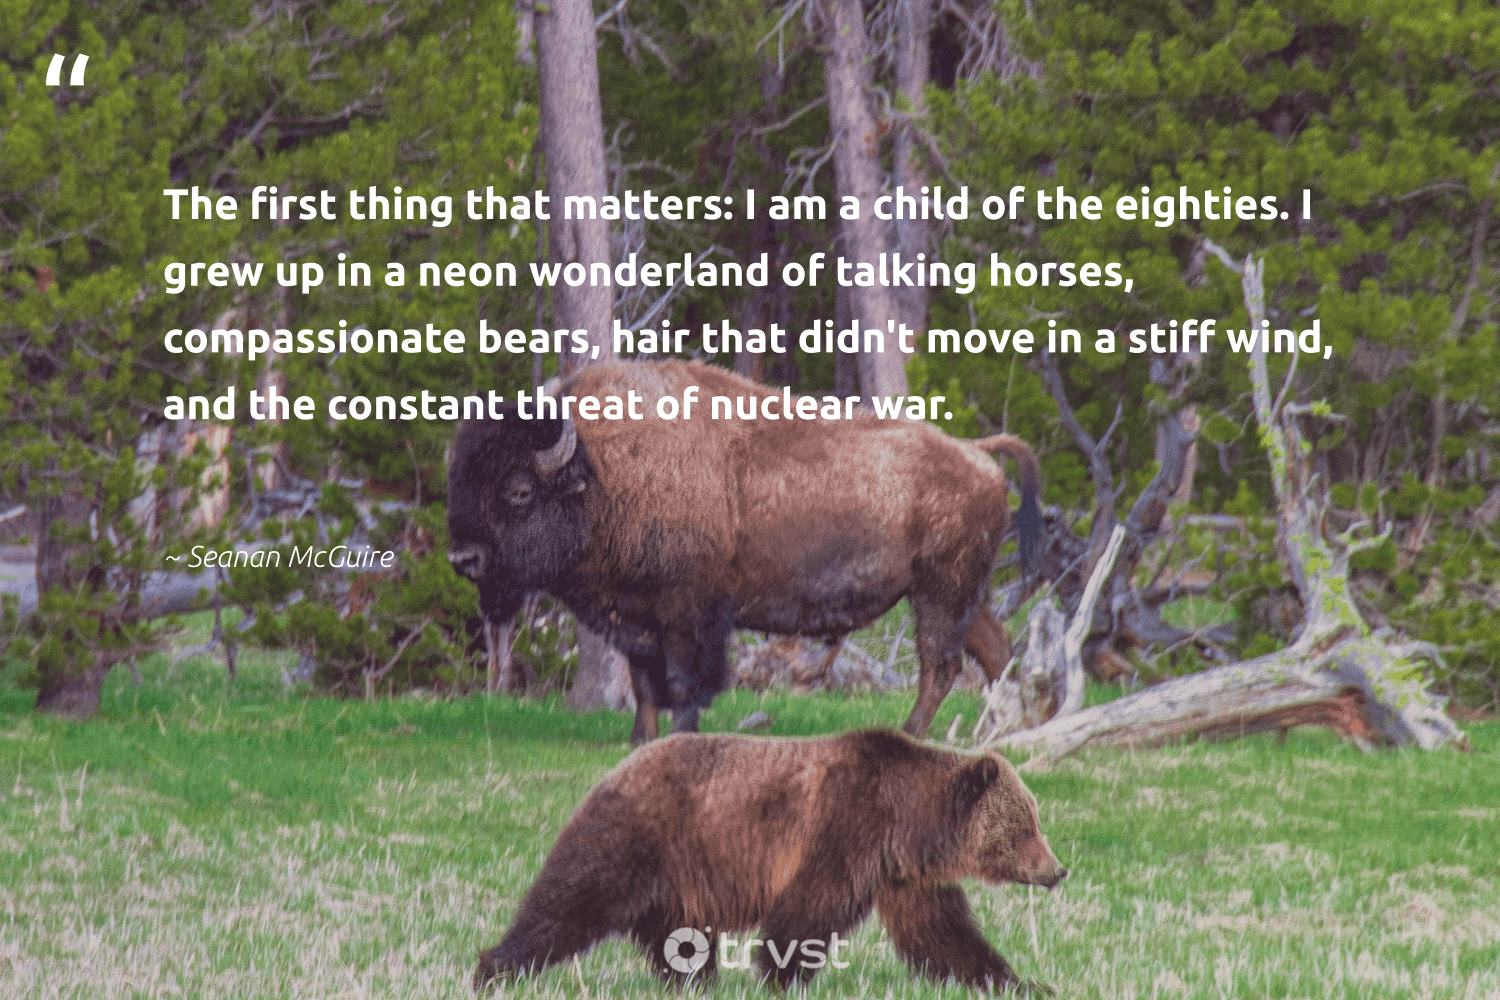 """""""The first thing that matters: I am a child of the eighties. I grew up in a neon wonderland of talking horses, compassionate bears, hair that didn't move in a stiff wind, and the constant threat of nuclear war.""""  - Seanan McGuire #trvst #quotes #bears #ourplanetdaily #dotherightthing #wild #collectiveaction #bear #socialimpact #sustainability #bethechange #bearlove"""